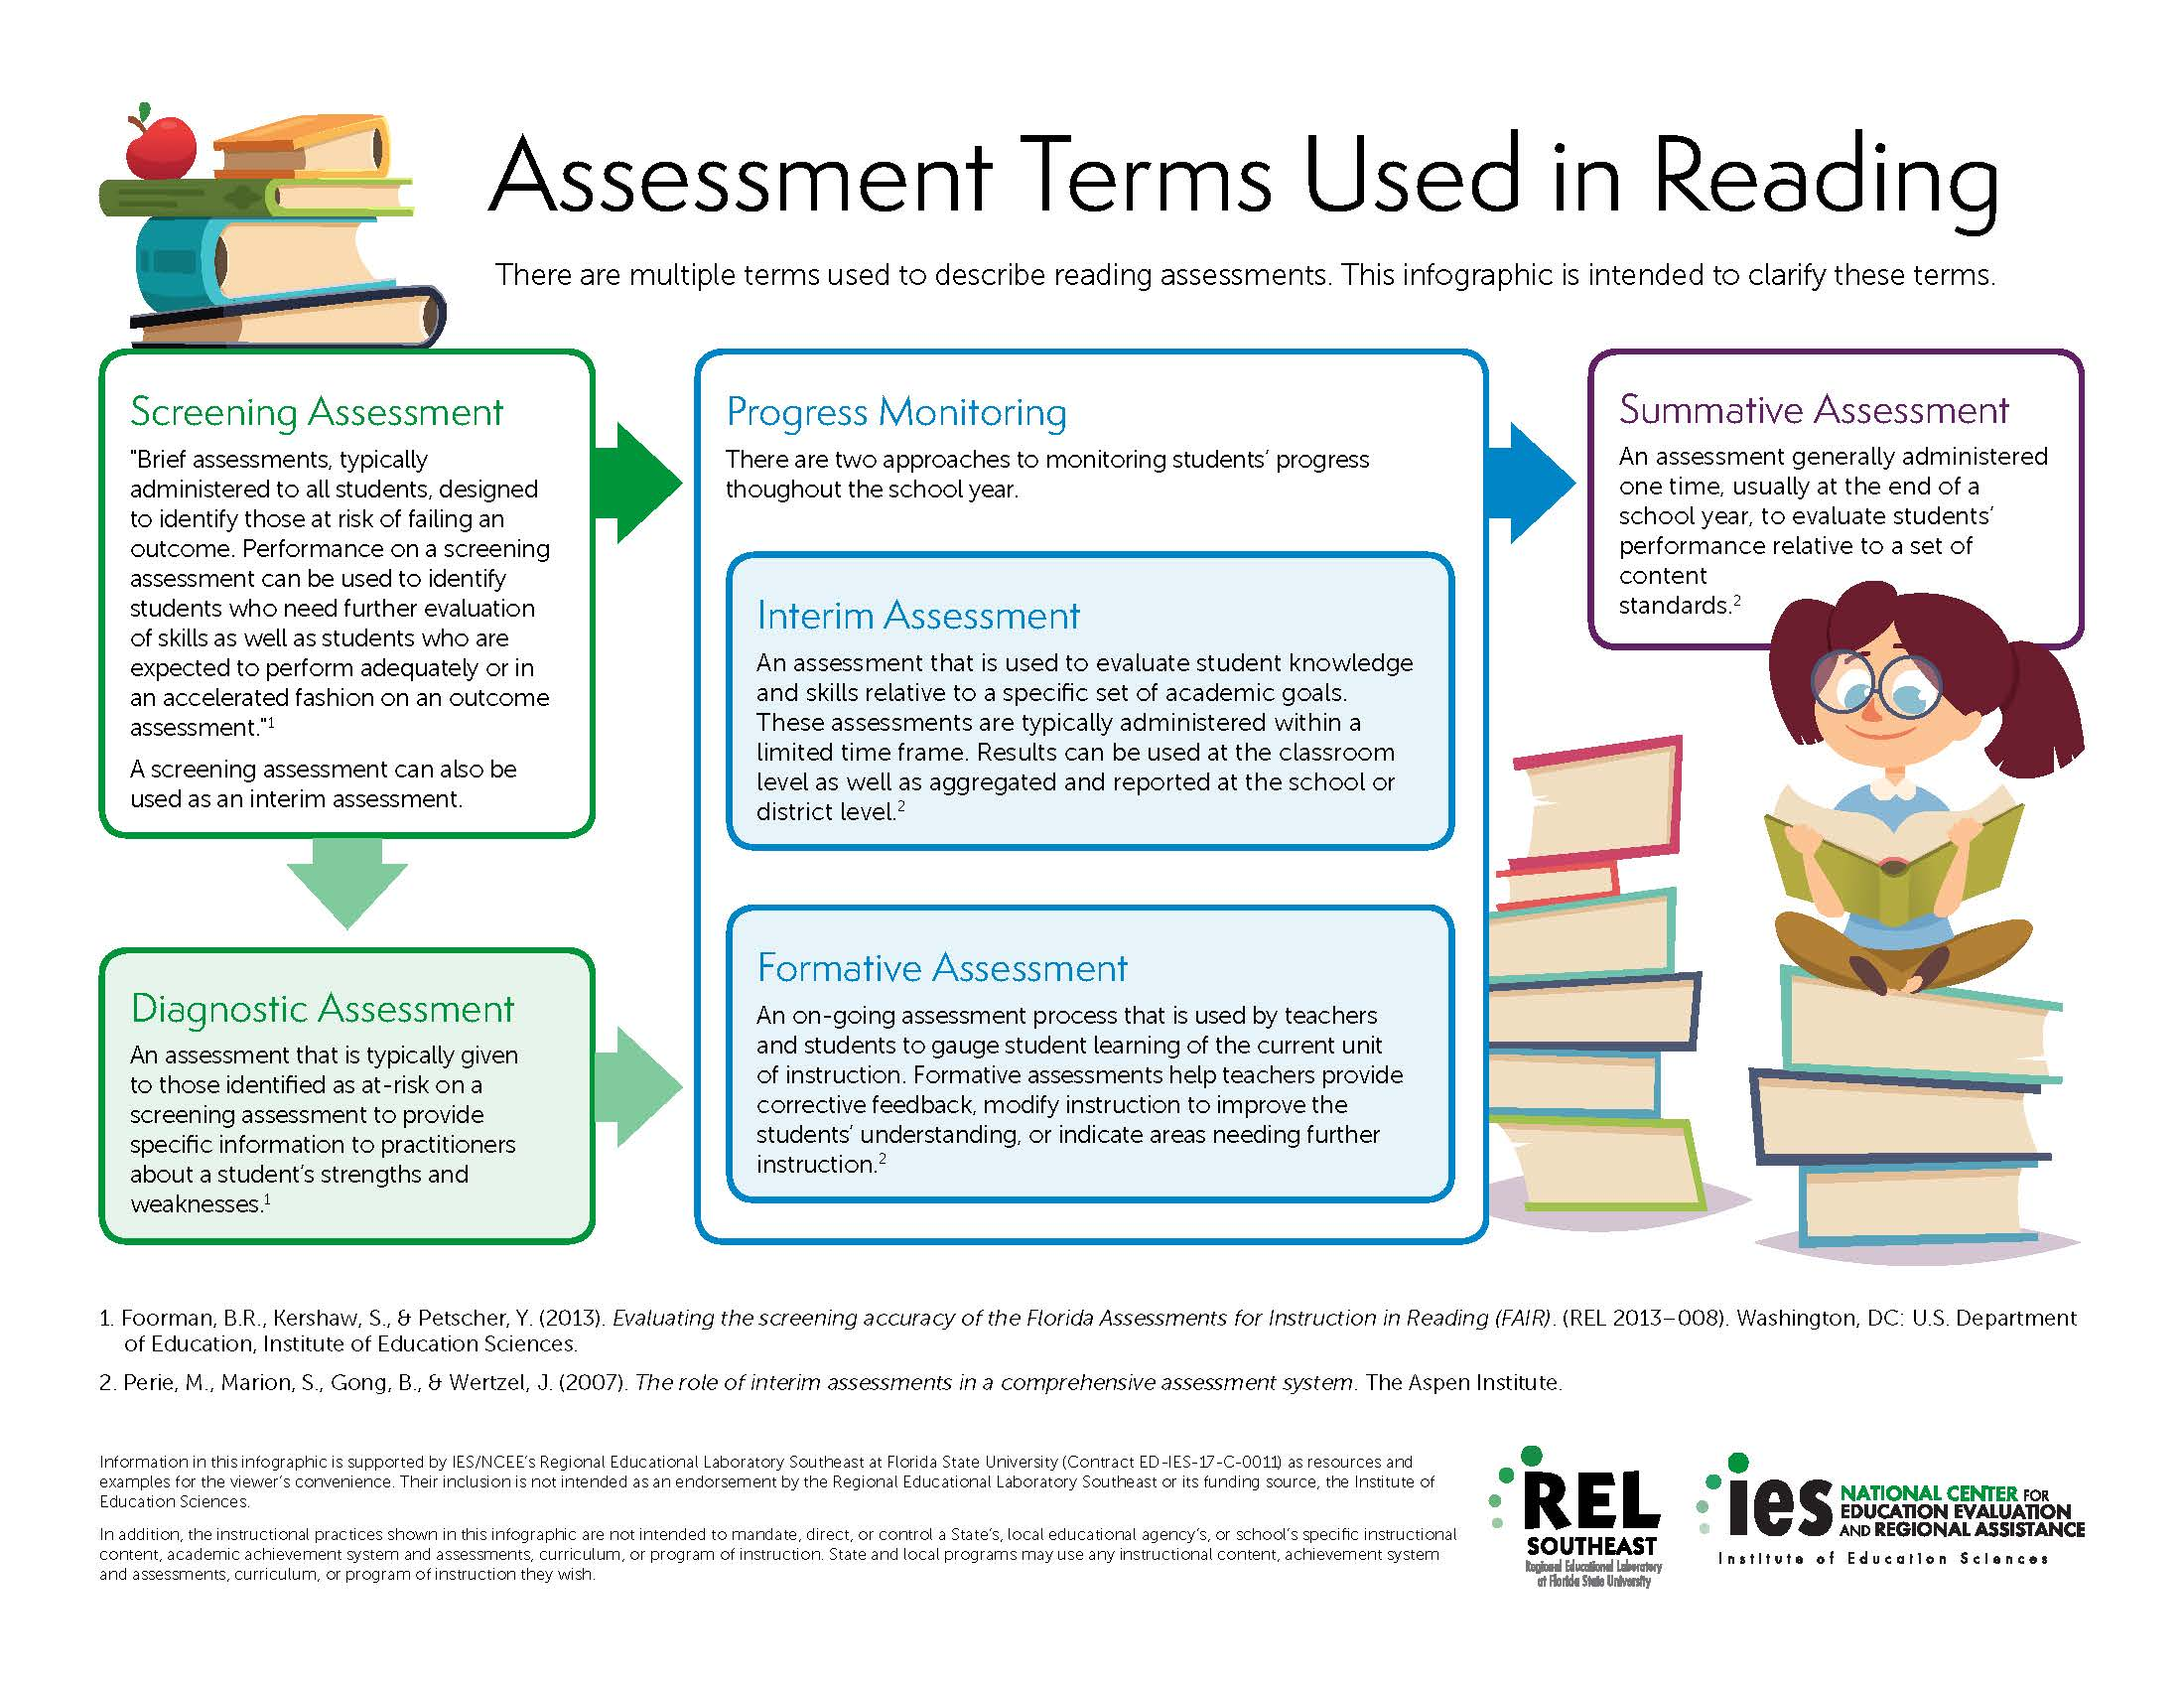 Making Sense Of Terms Used In Early Reading Assessment Download assesment free images from stockfreeimages. early reading assessment